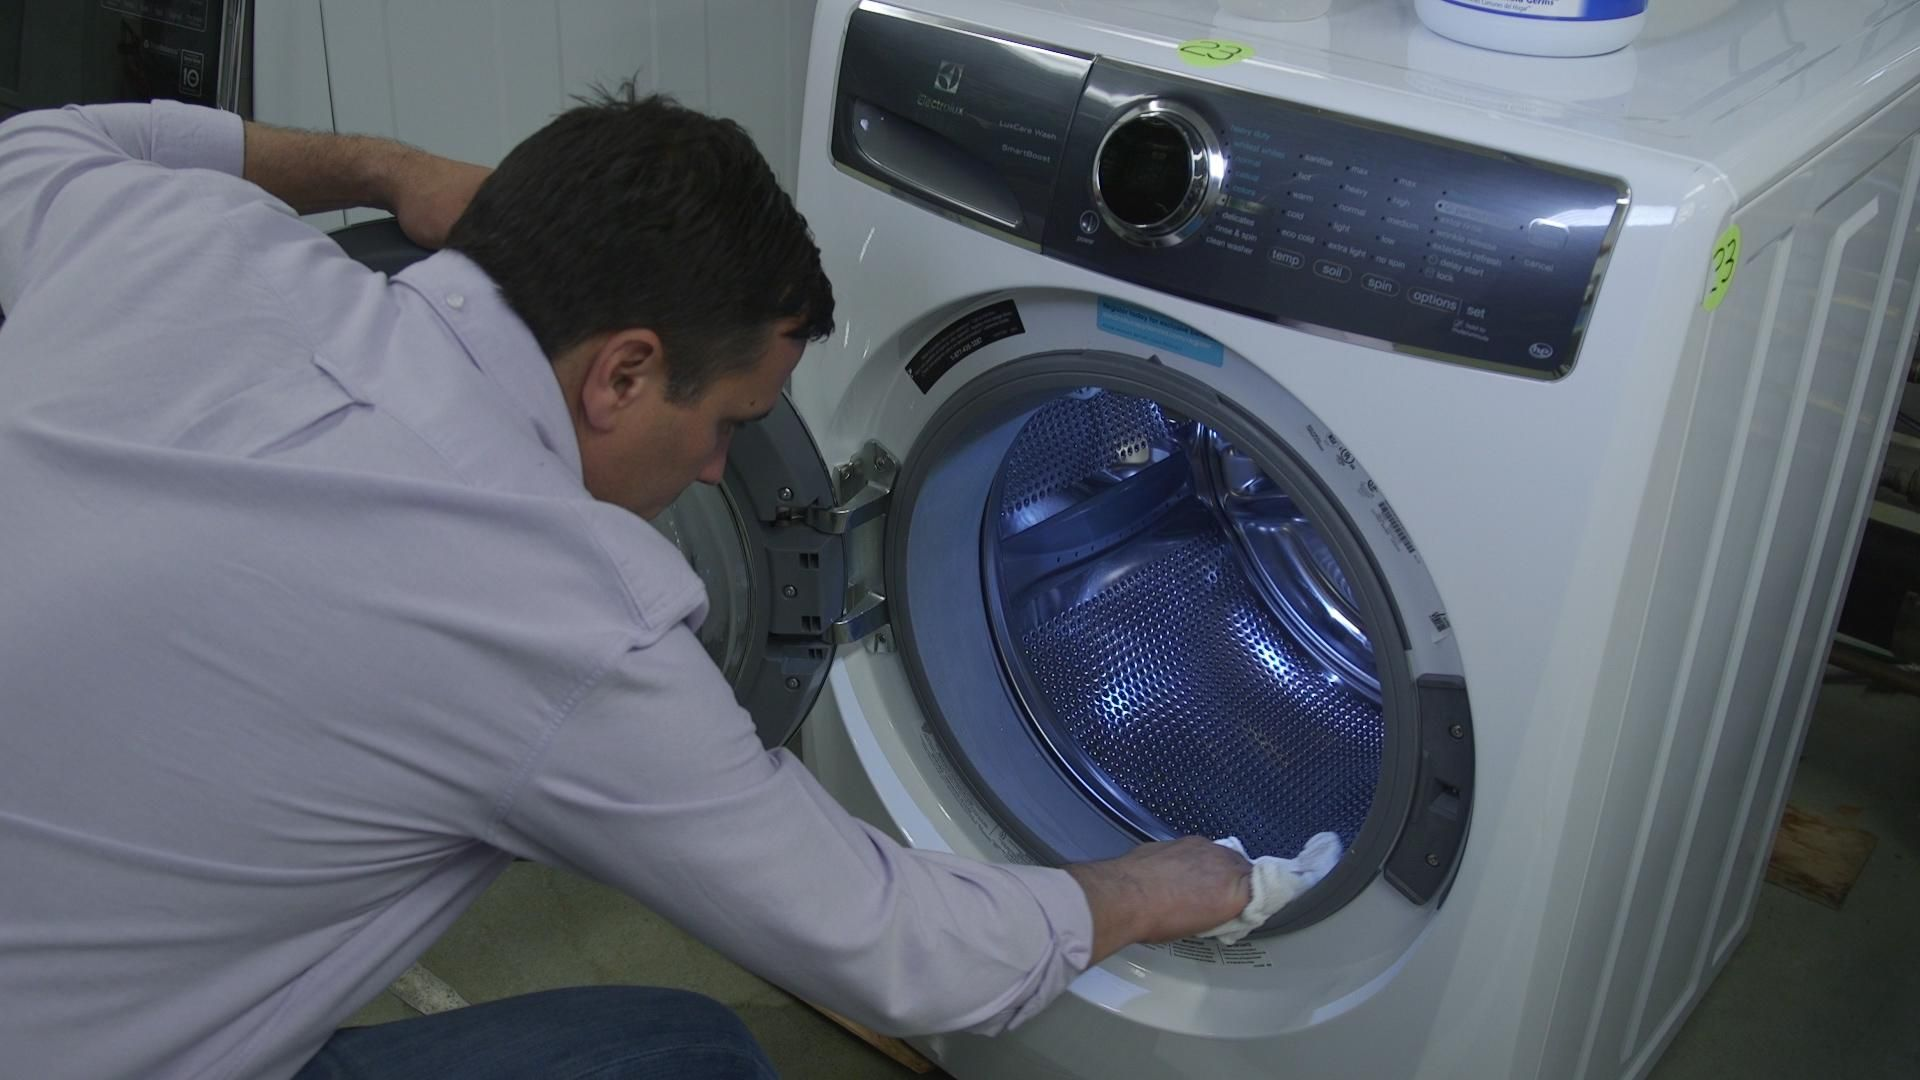 How to clean your washing machine consumer reports soap scum and